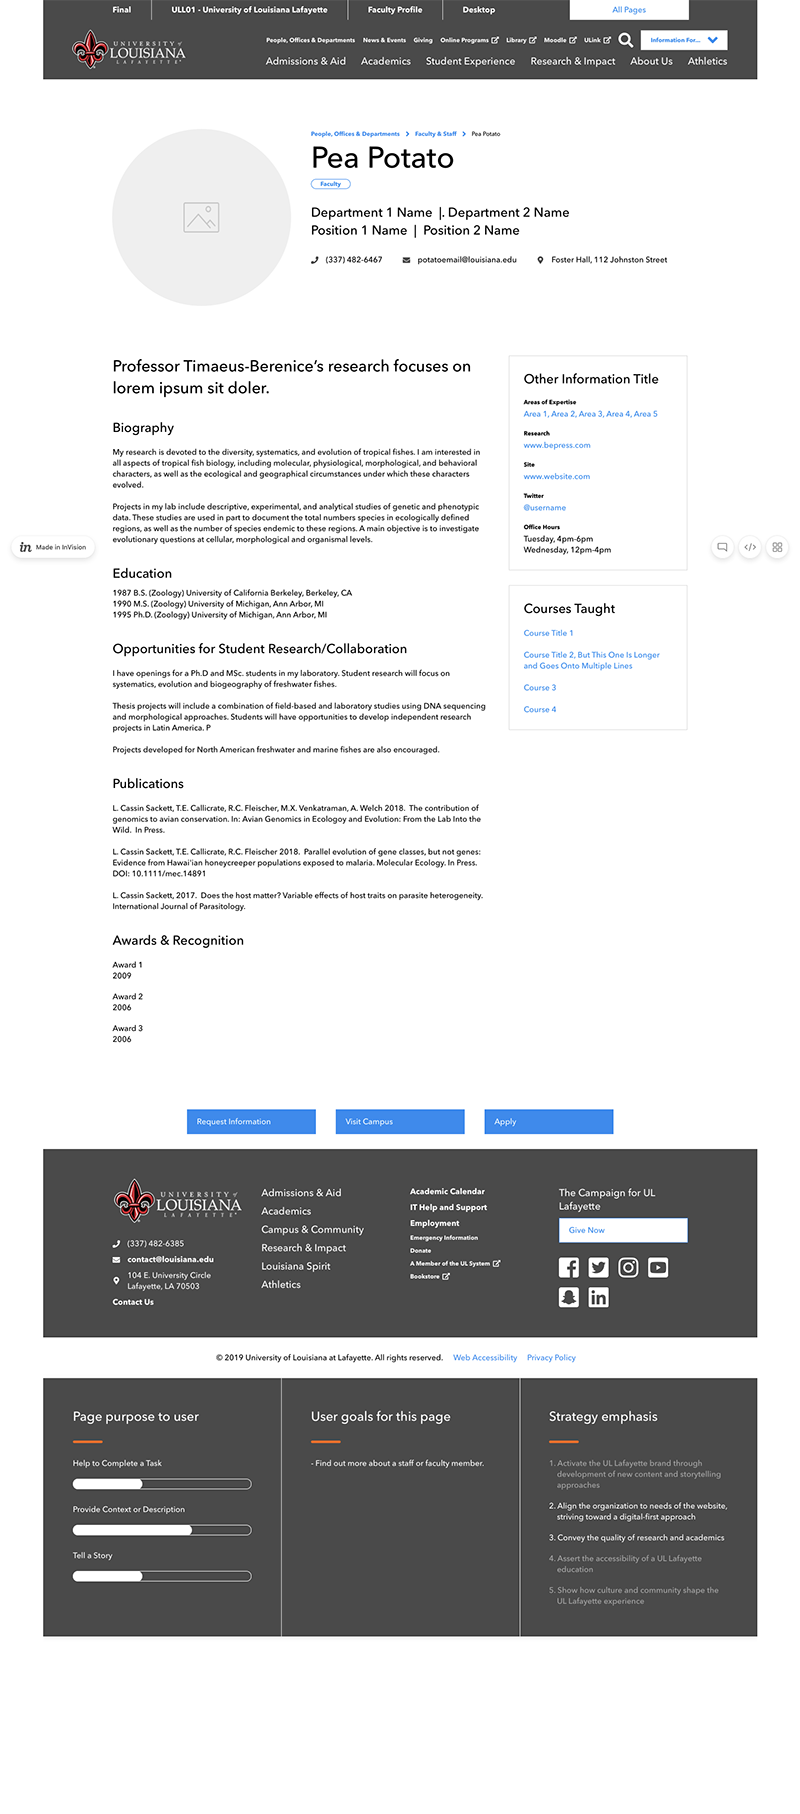 Wireframes Faculty Profile Png Web Ambassadors Network